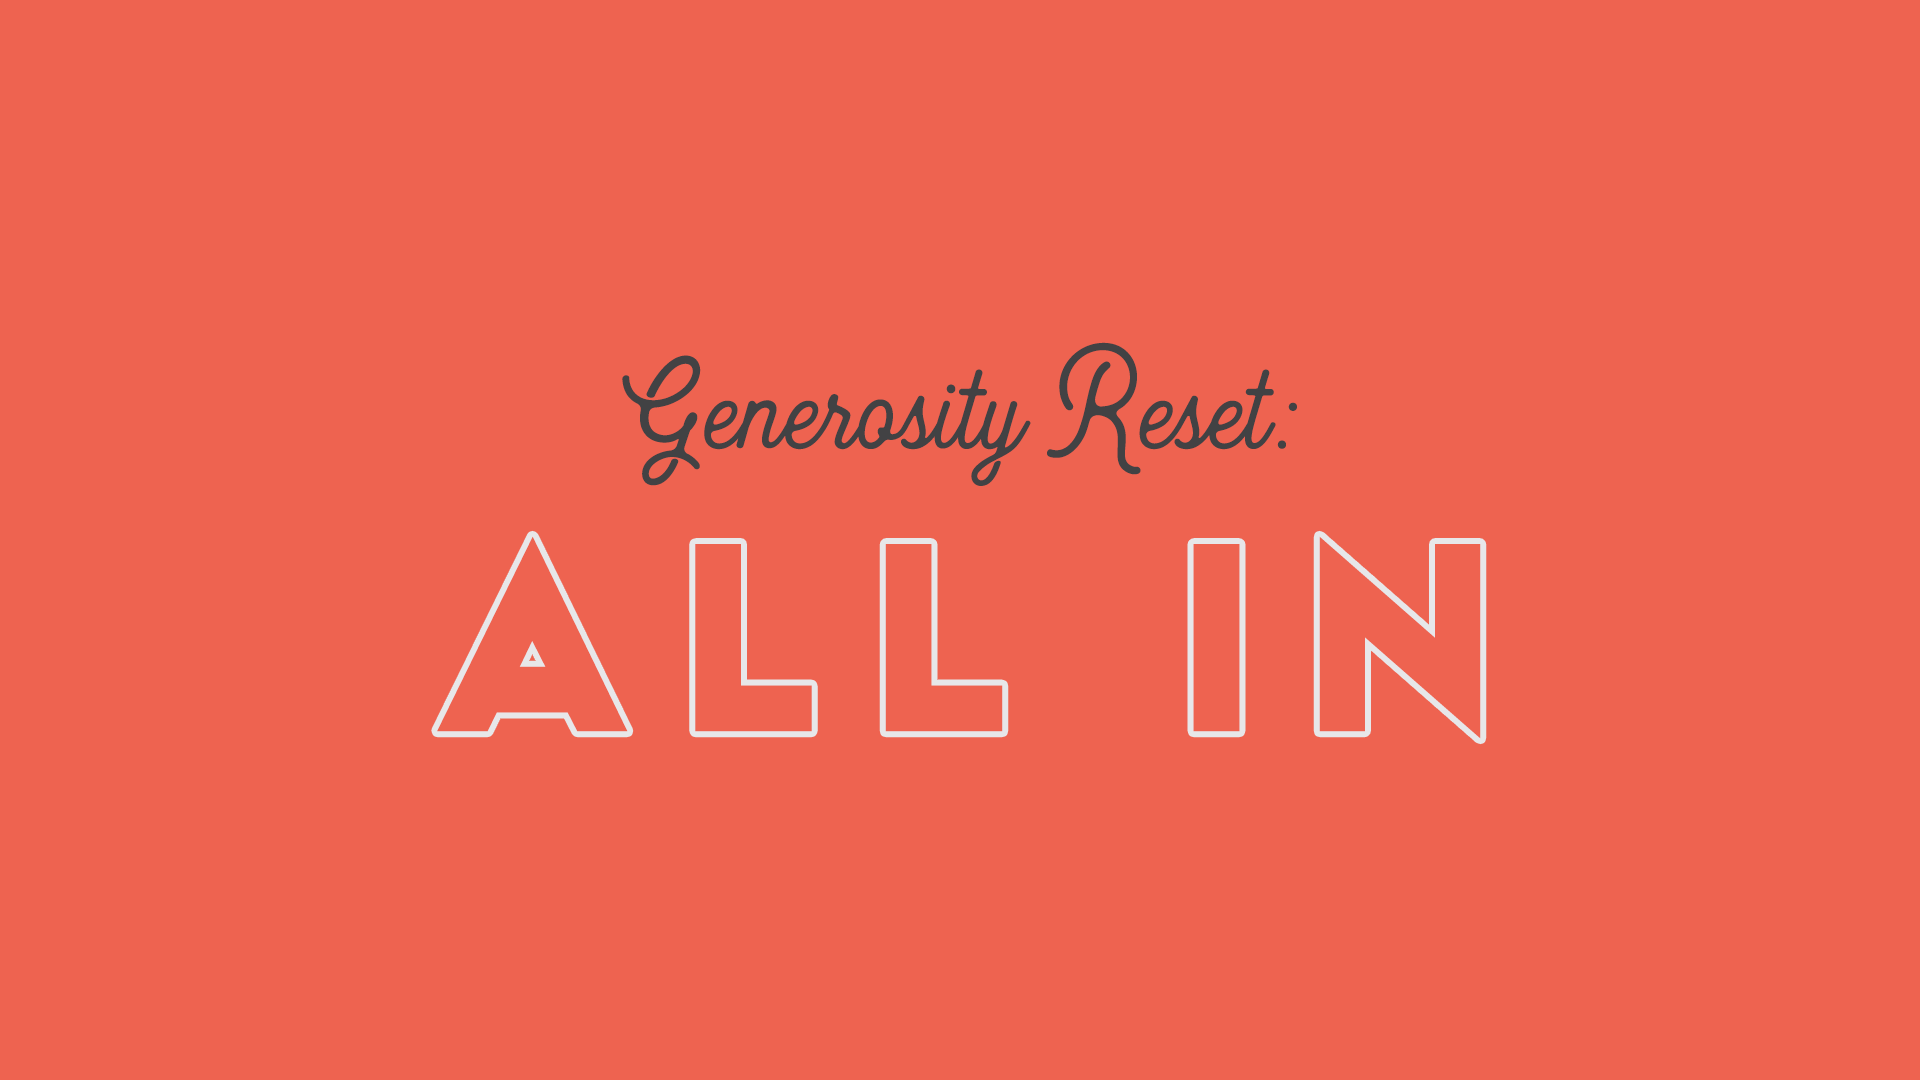 All-In Generosity Reset 5.png